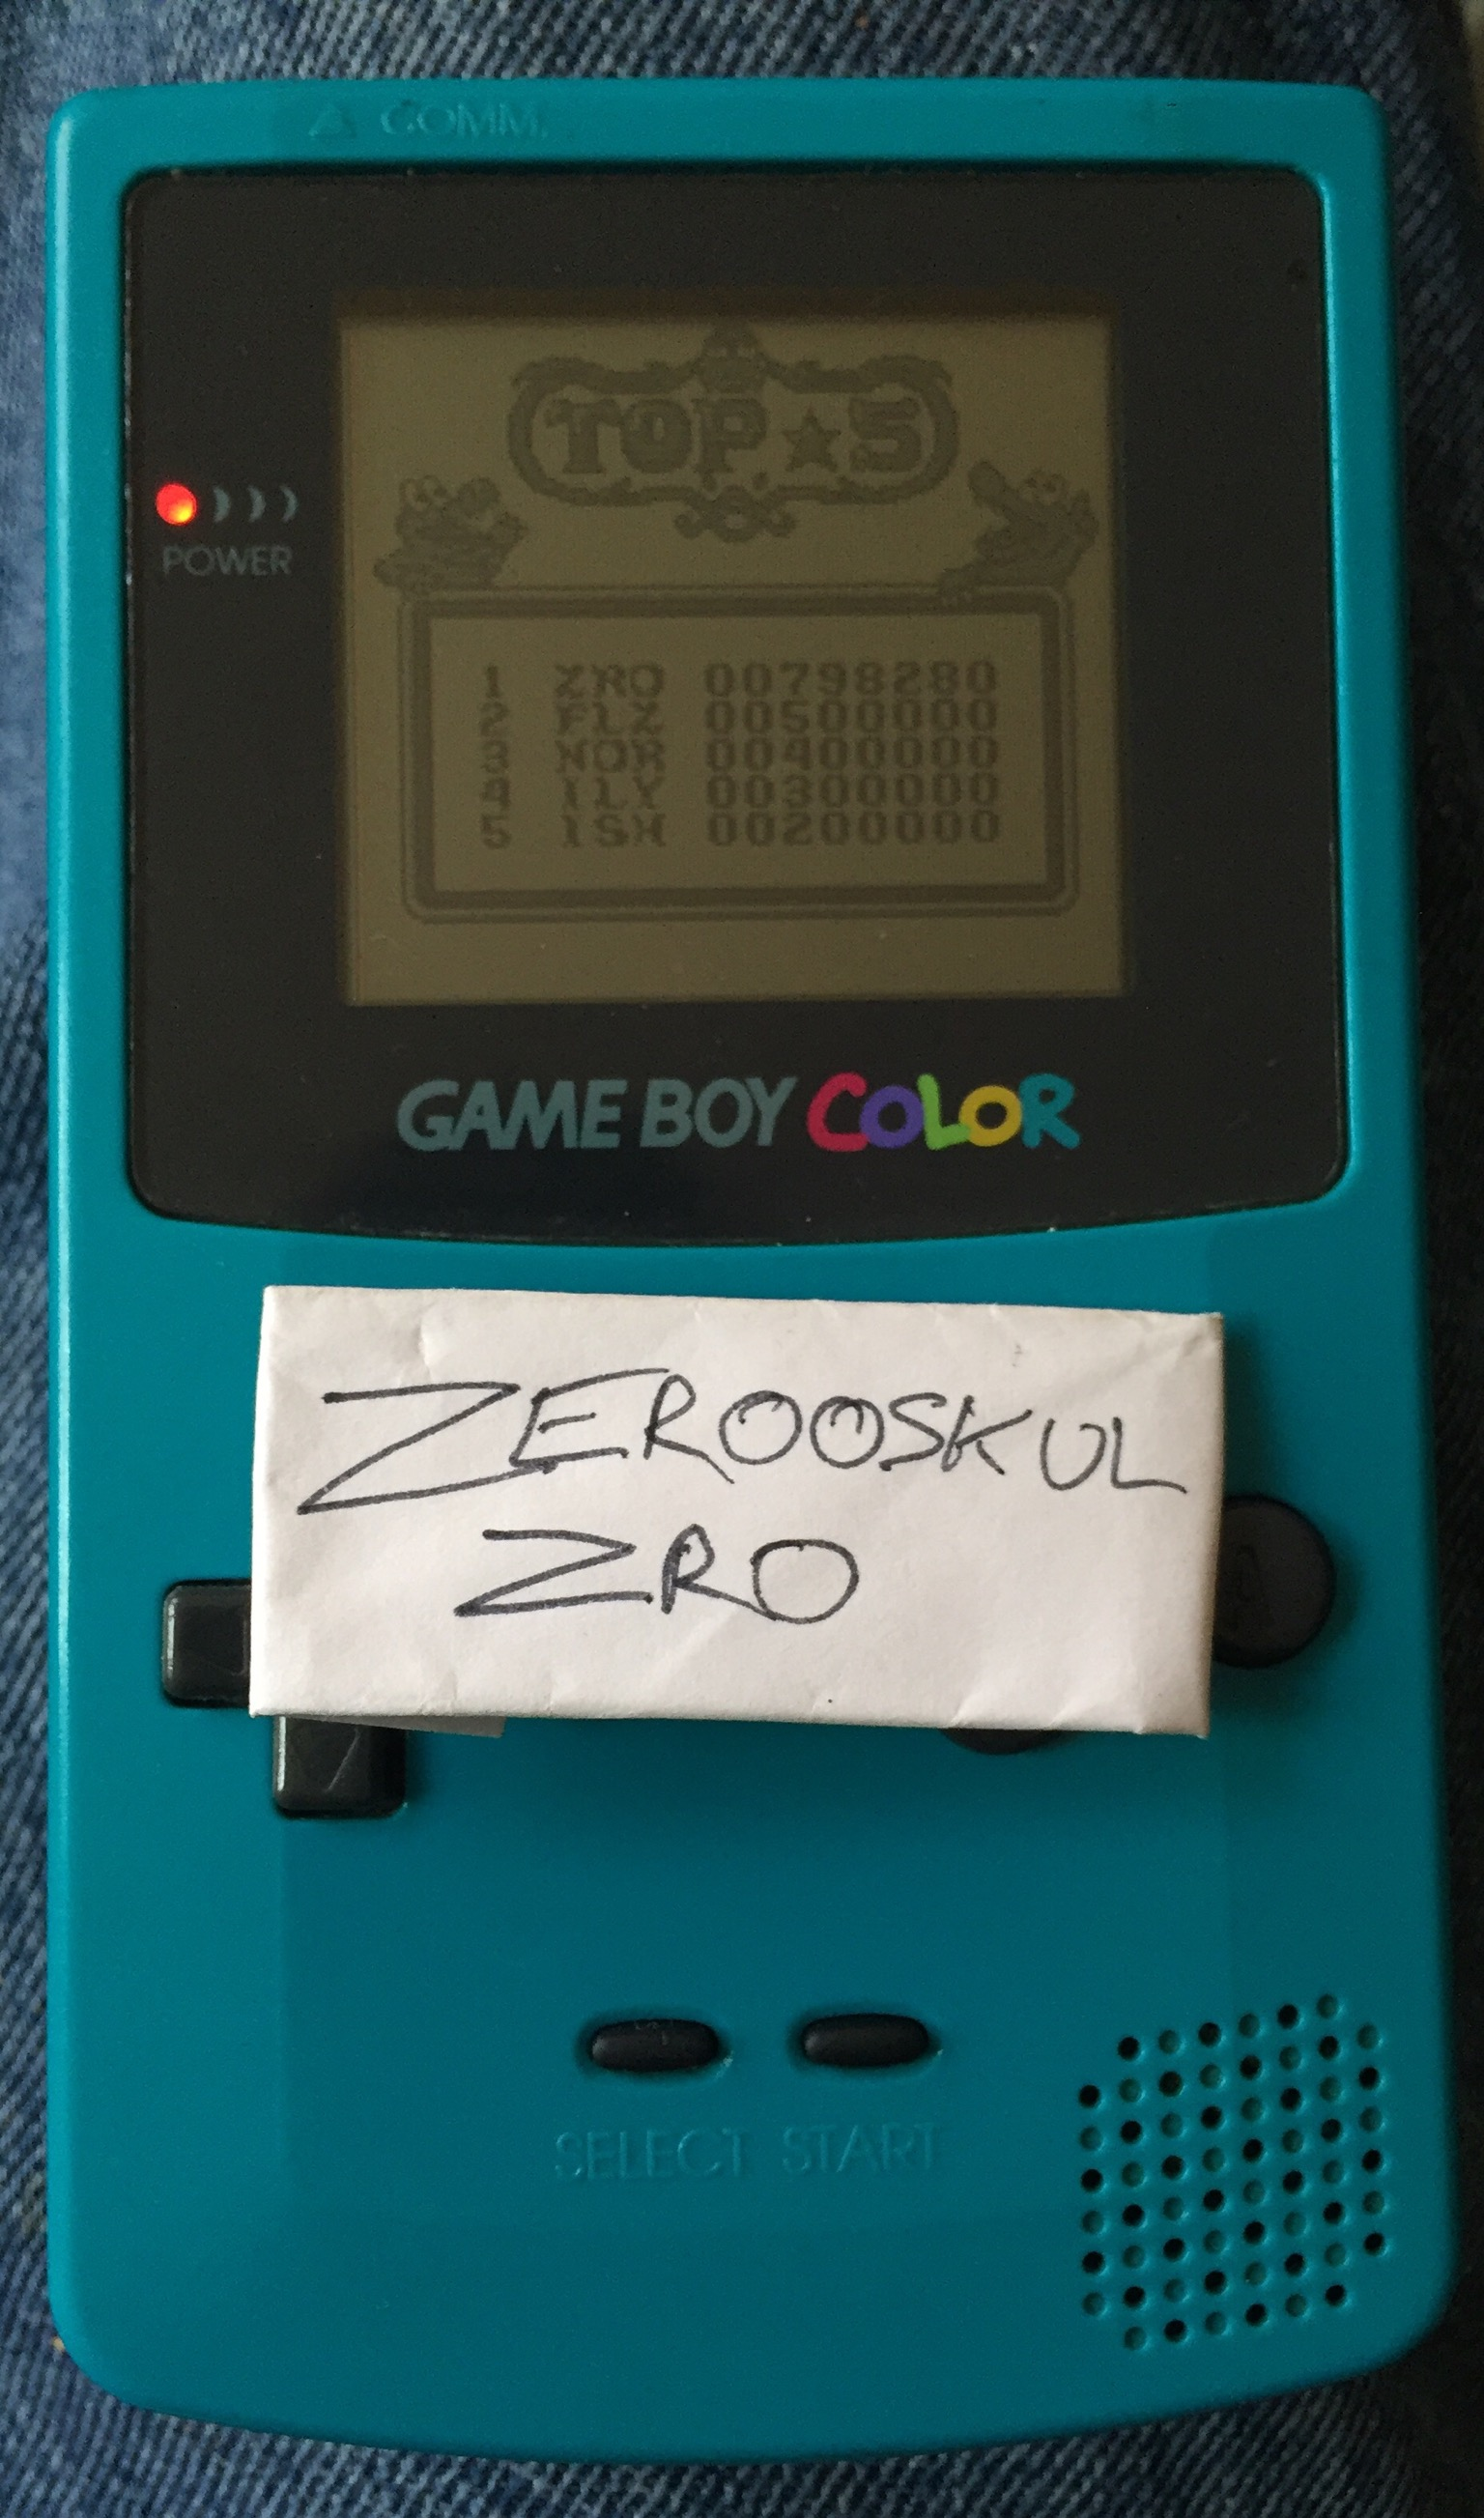 zerooskul: Pinball: Revenge of the Gator (Game Boy) 798,280 points on 2018-05-27 13:59:21